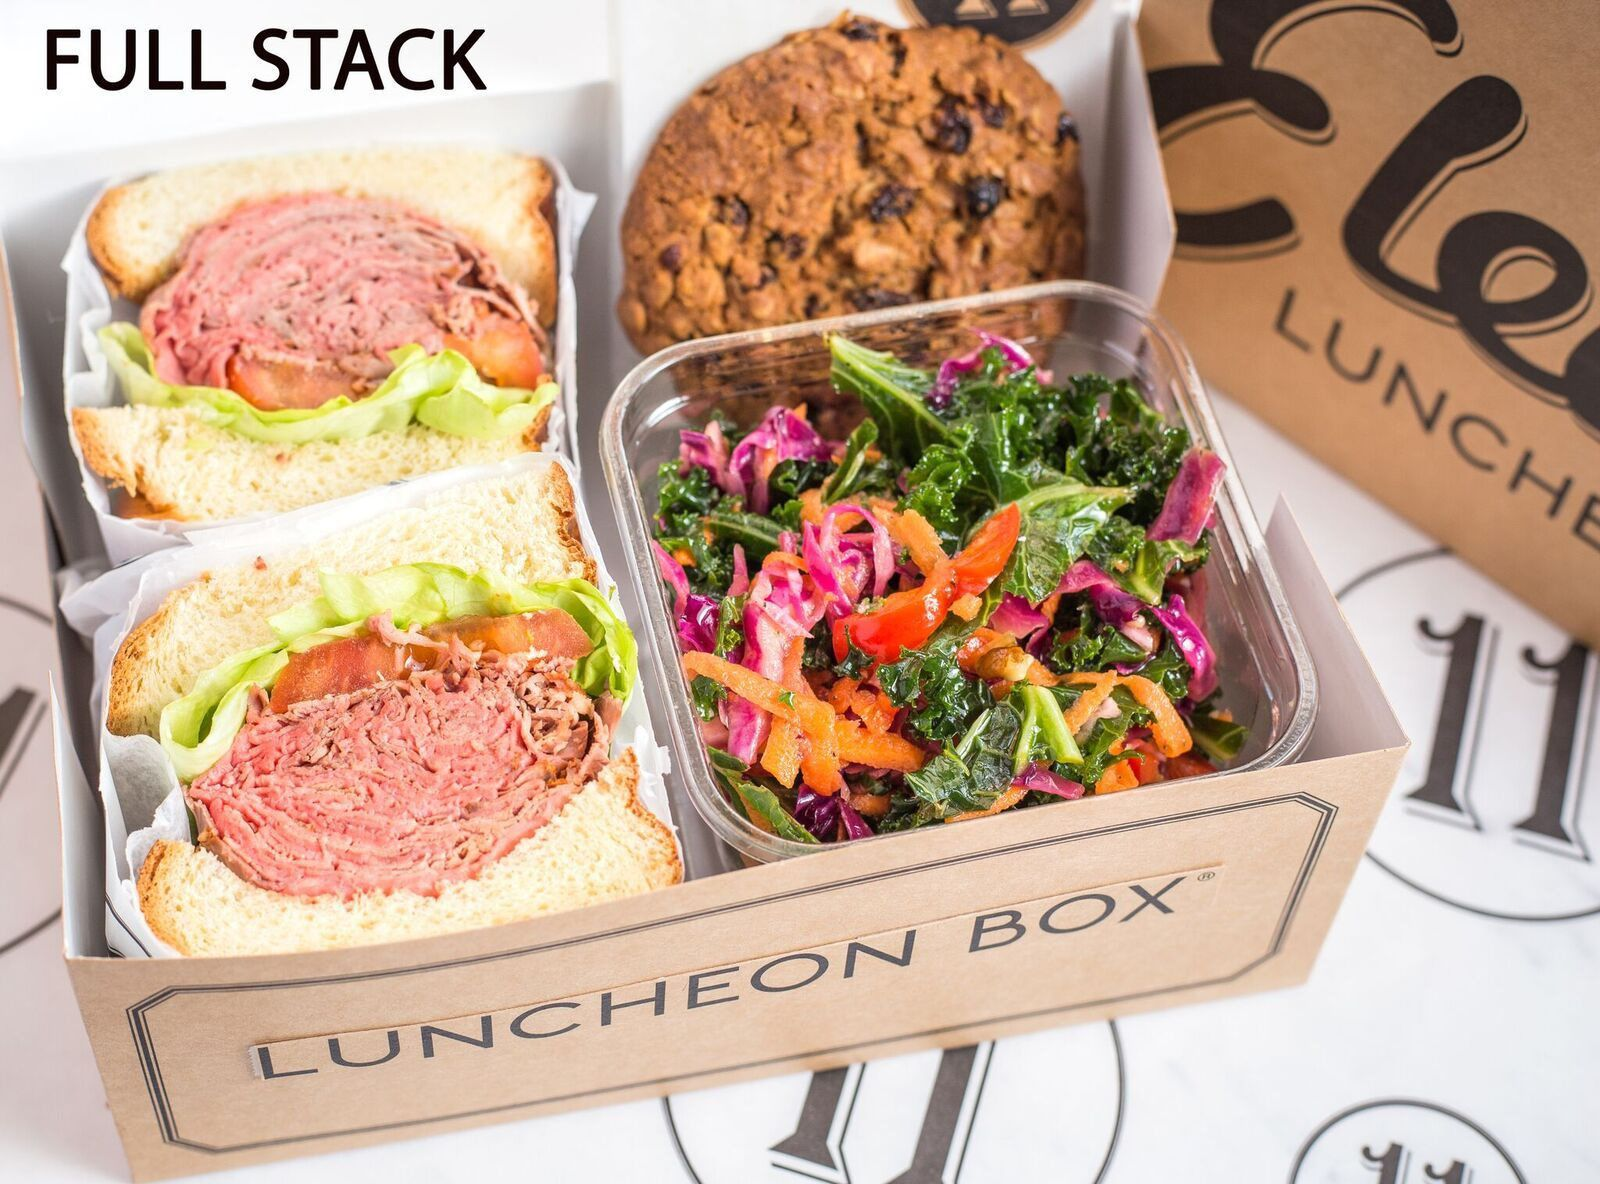 Luncheon Boxes